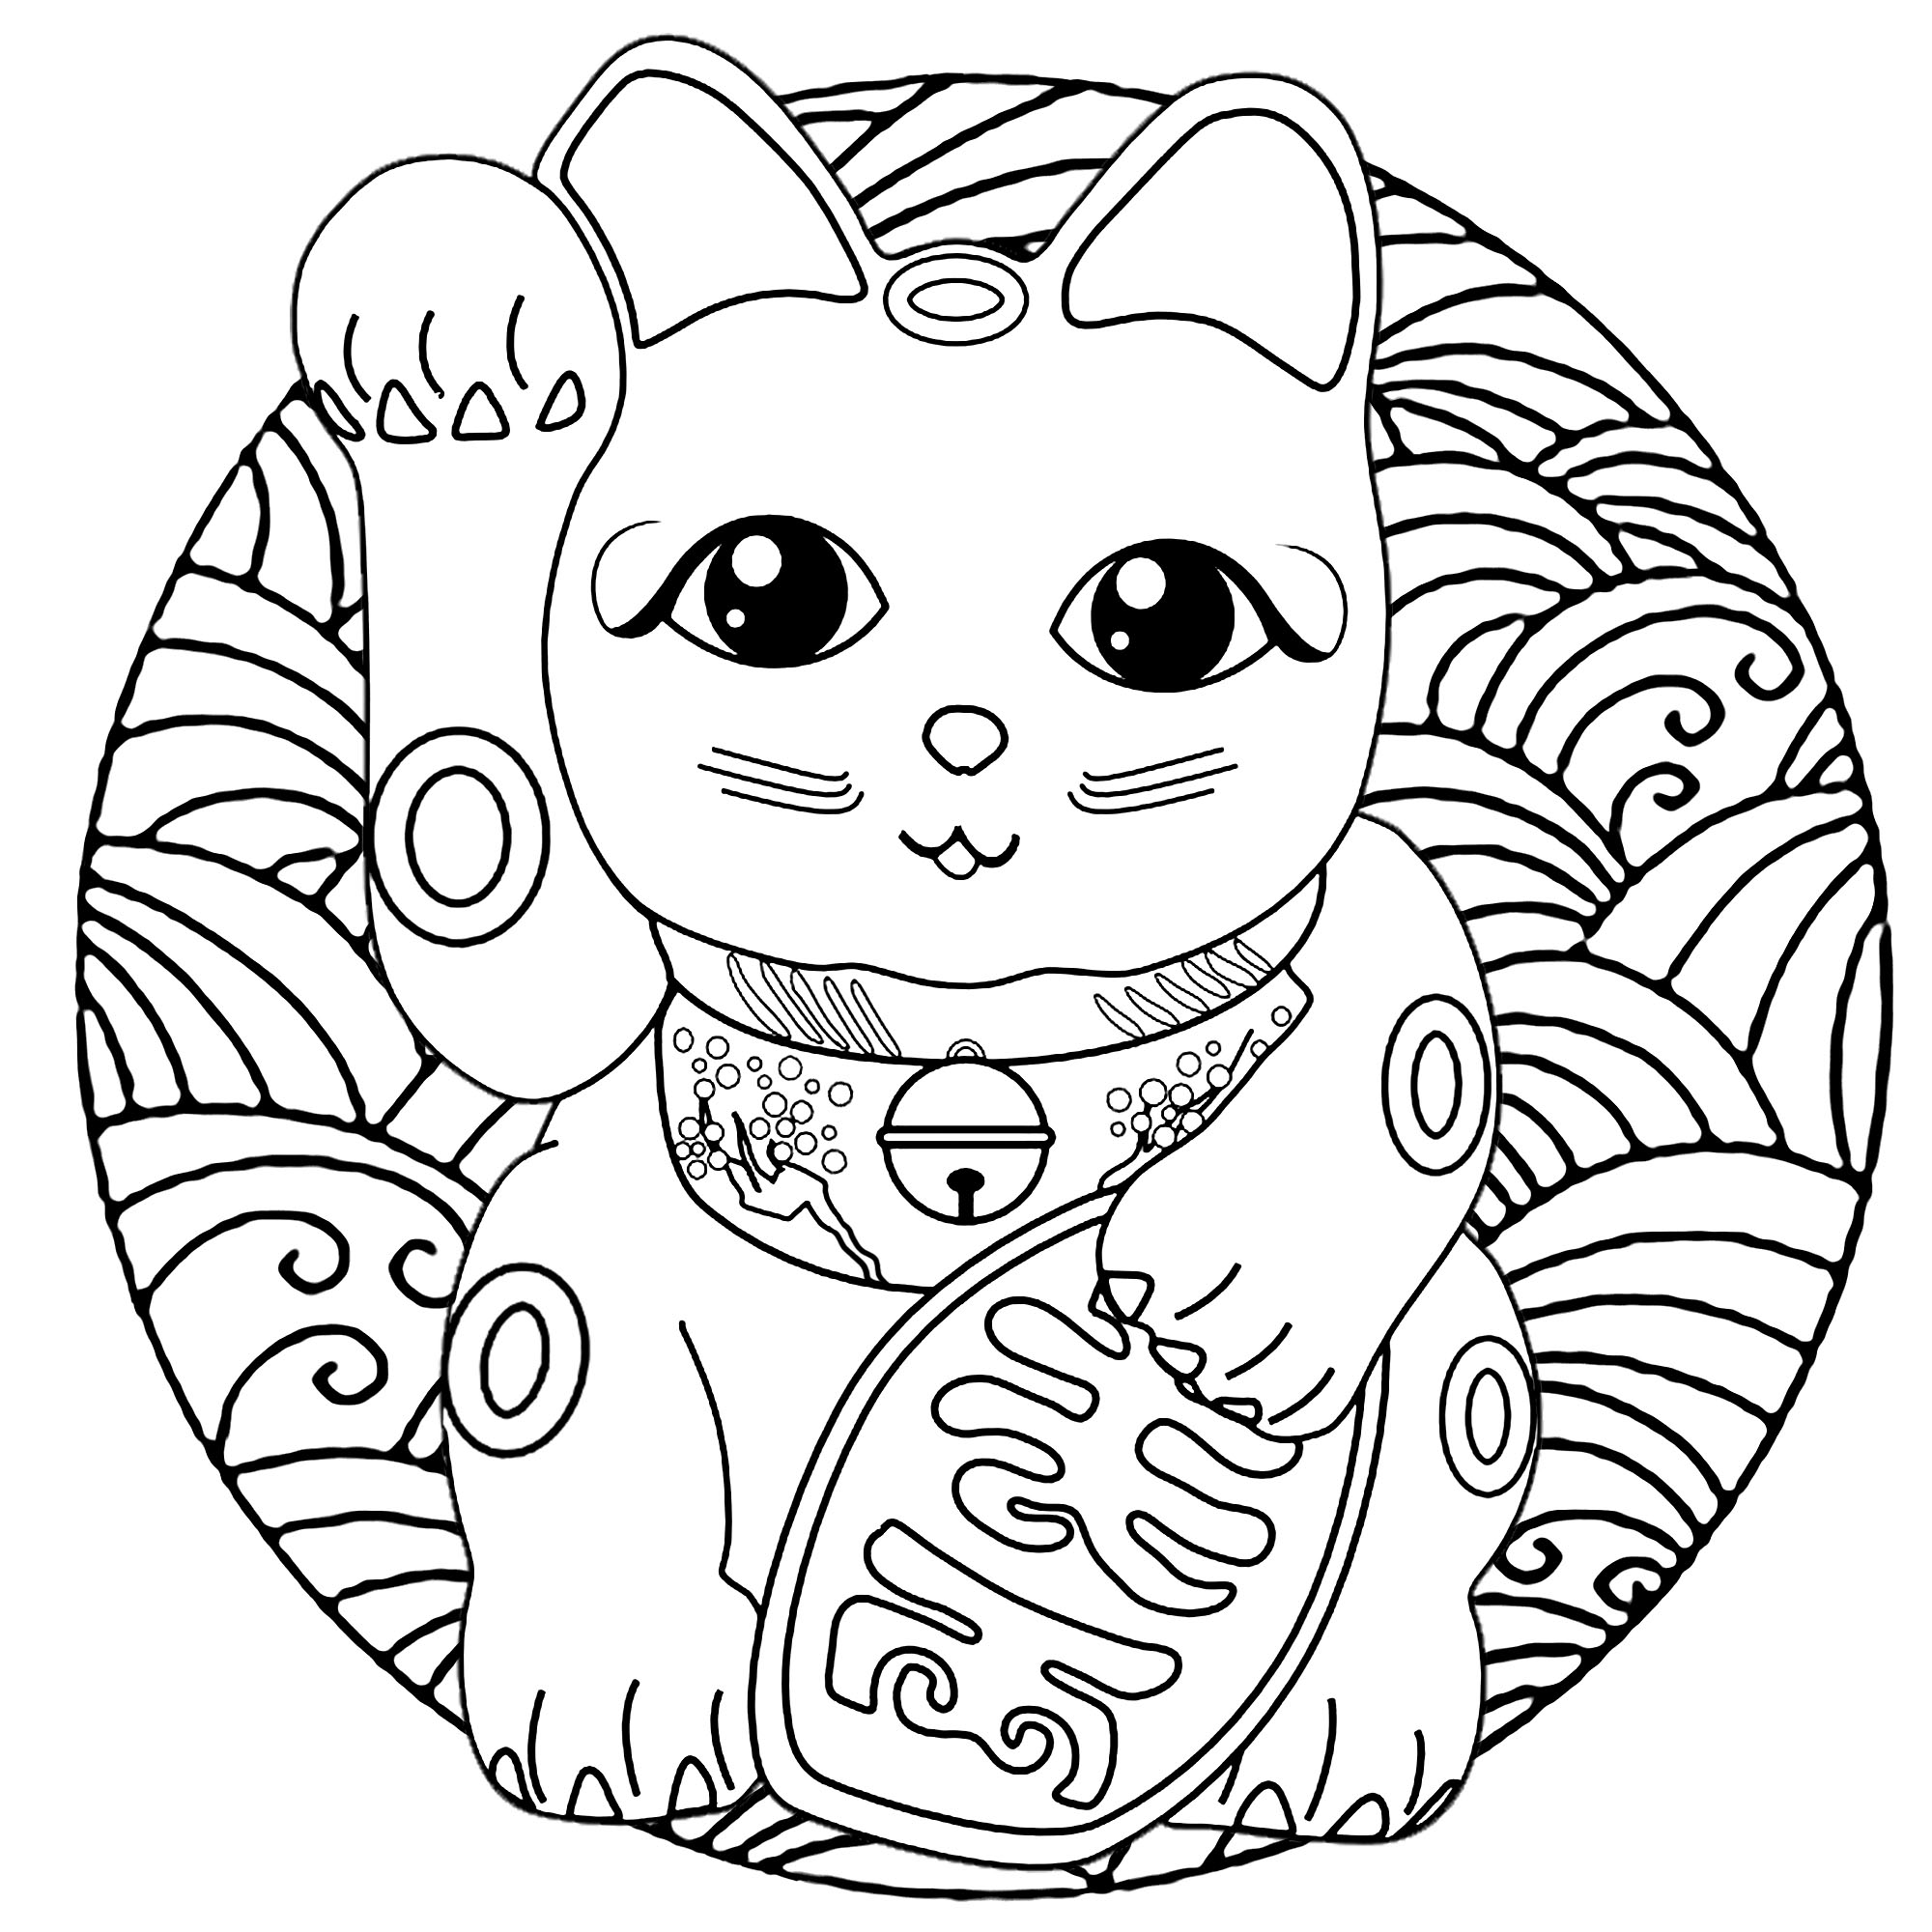 A cute Maneki Neko cat (Japanese figurine : lucky charm, talisman) in a Mandala full of waves (Japanese graphic design style)